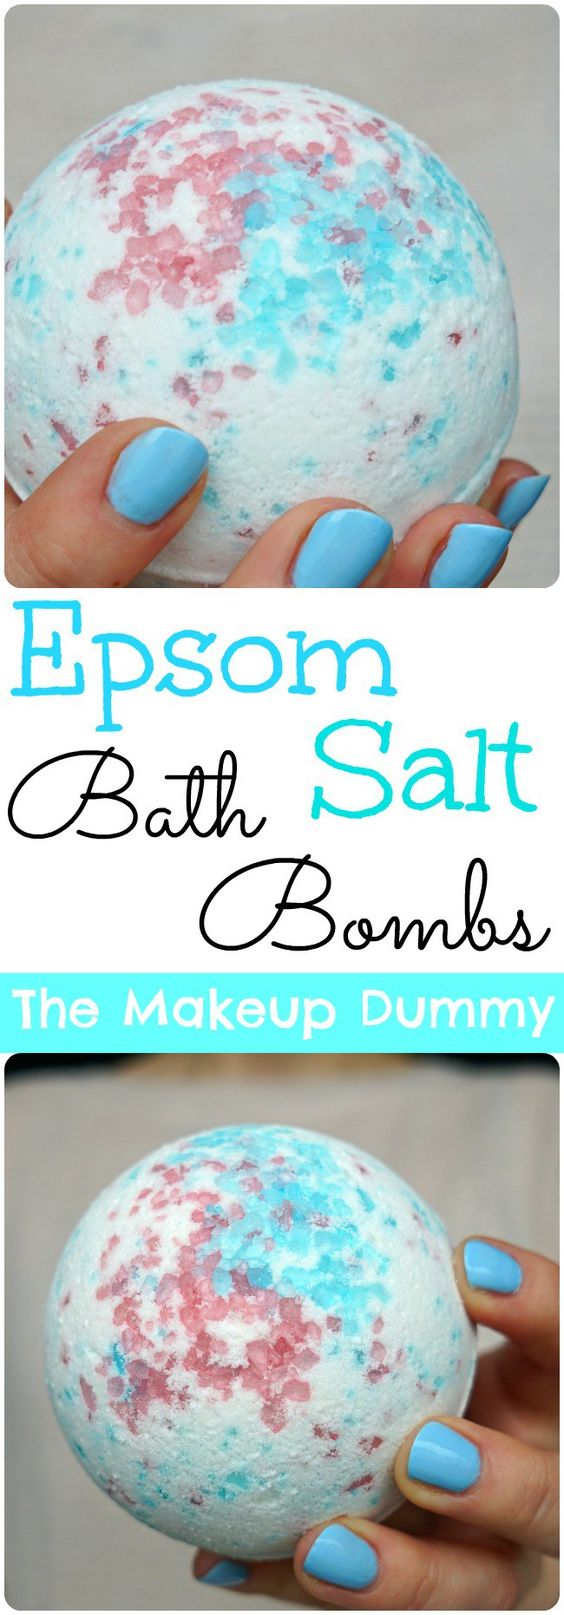 DIY Bath Bombs With Epsom Salt.